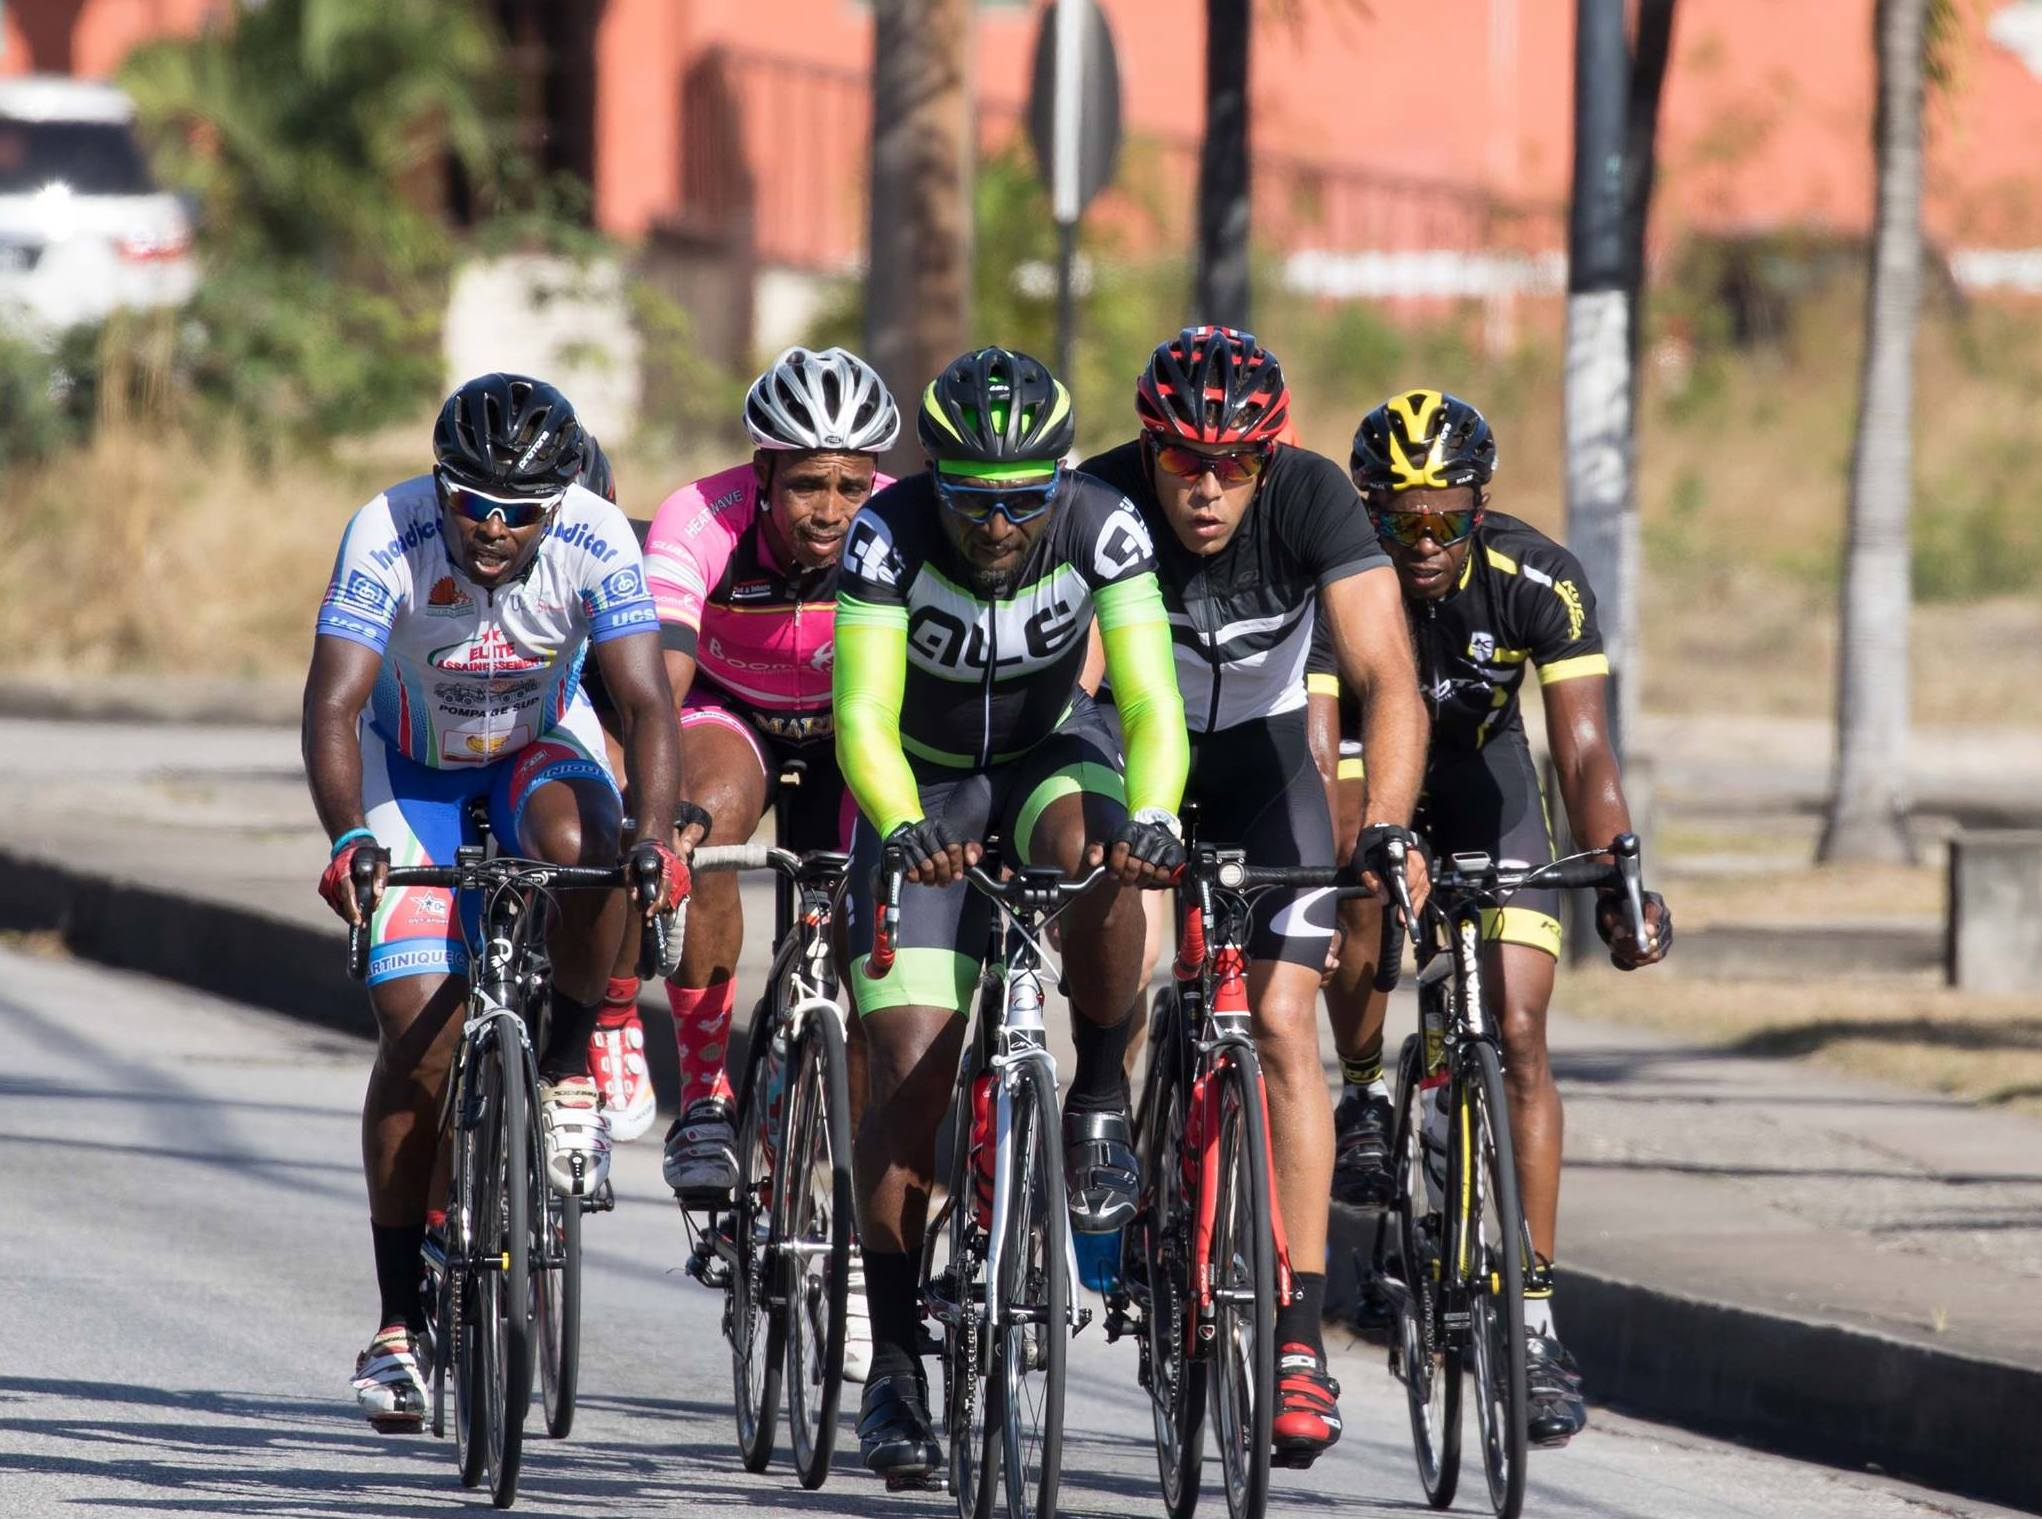 Cyclists battled gruelling wind and heat conditions. Photo credit:  Terrence.G.Lowe